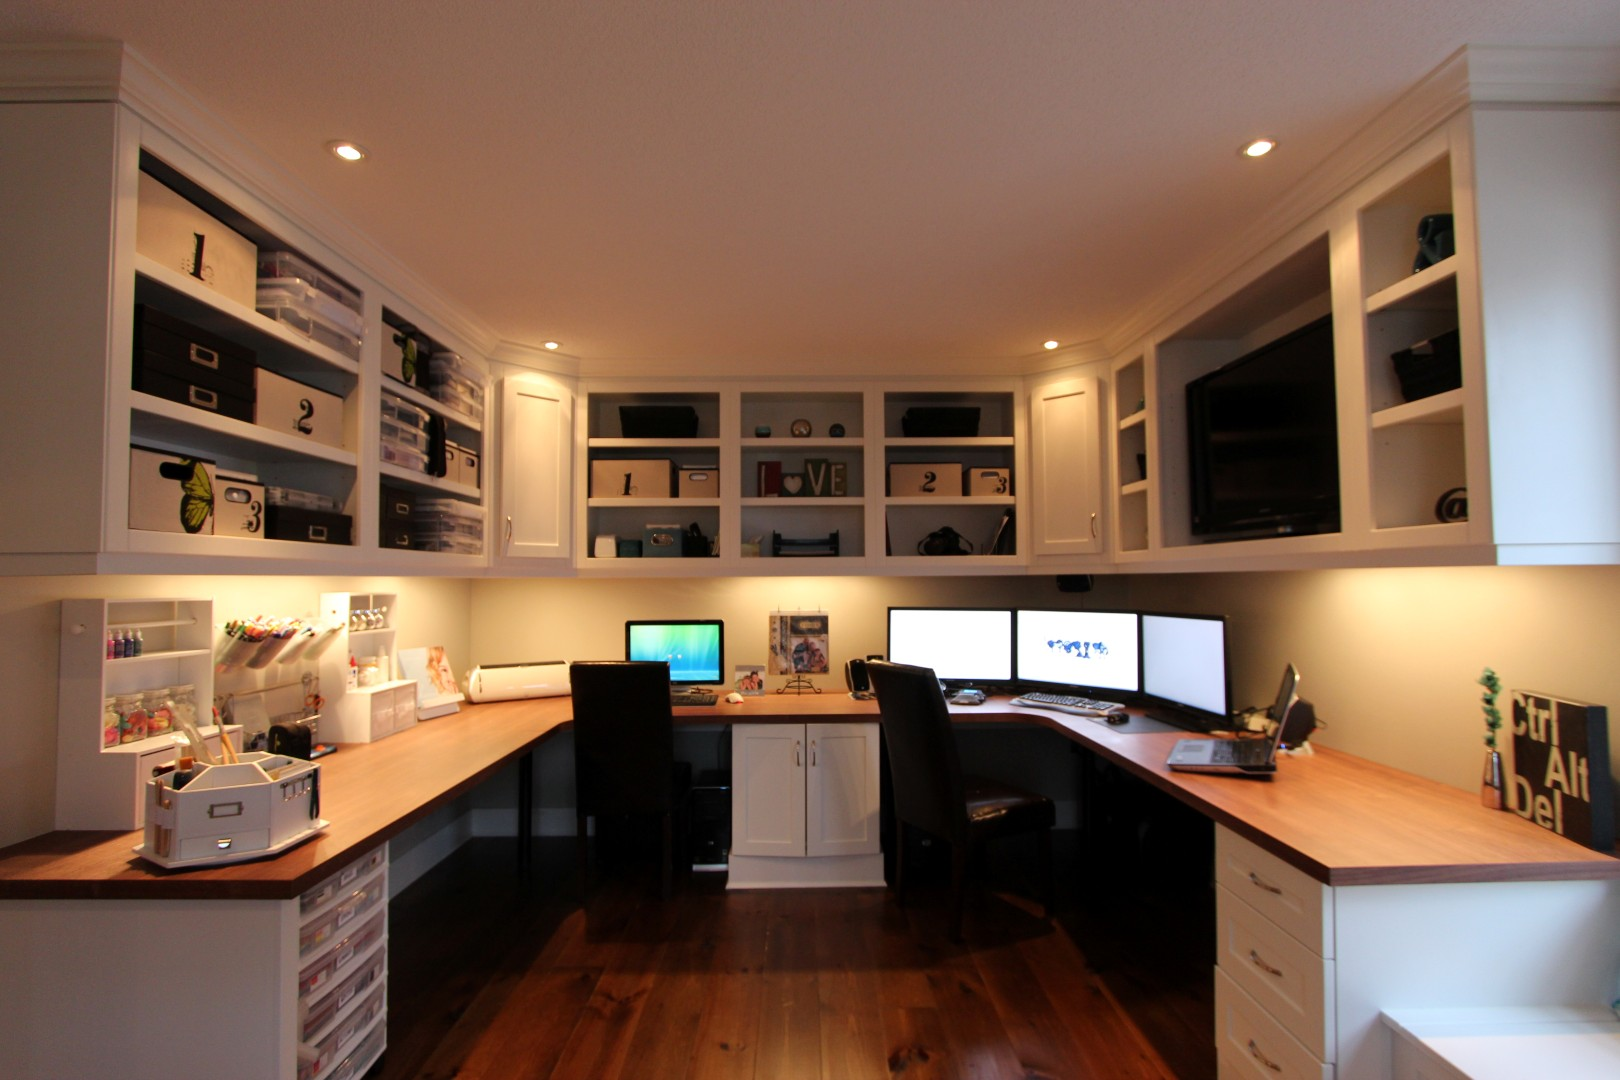 spacious room home offices designs ideas | Home Office & Workspaces - Gum Tree Cabinets